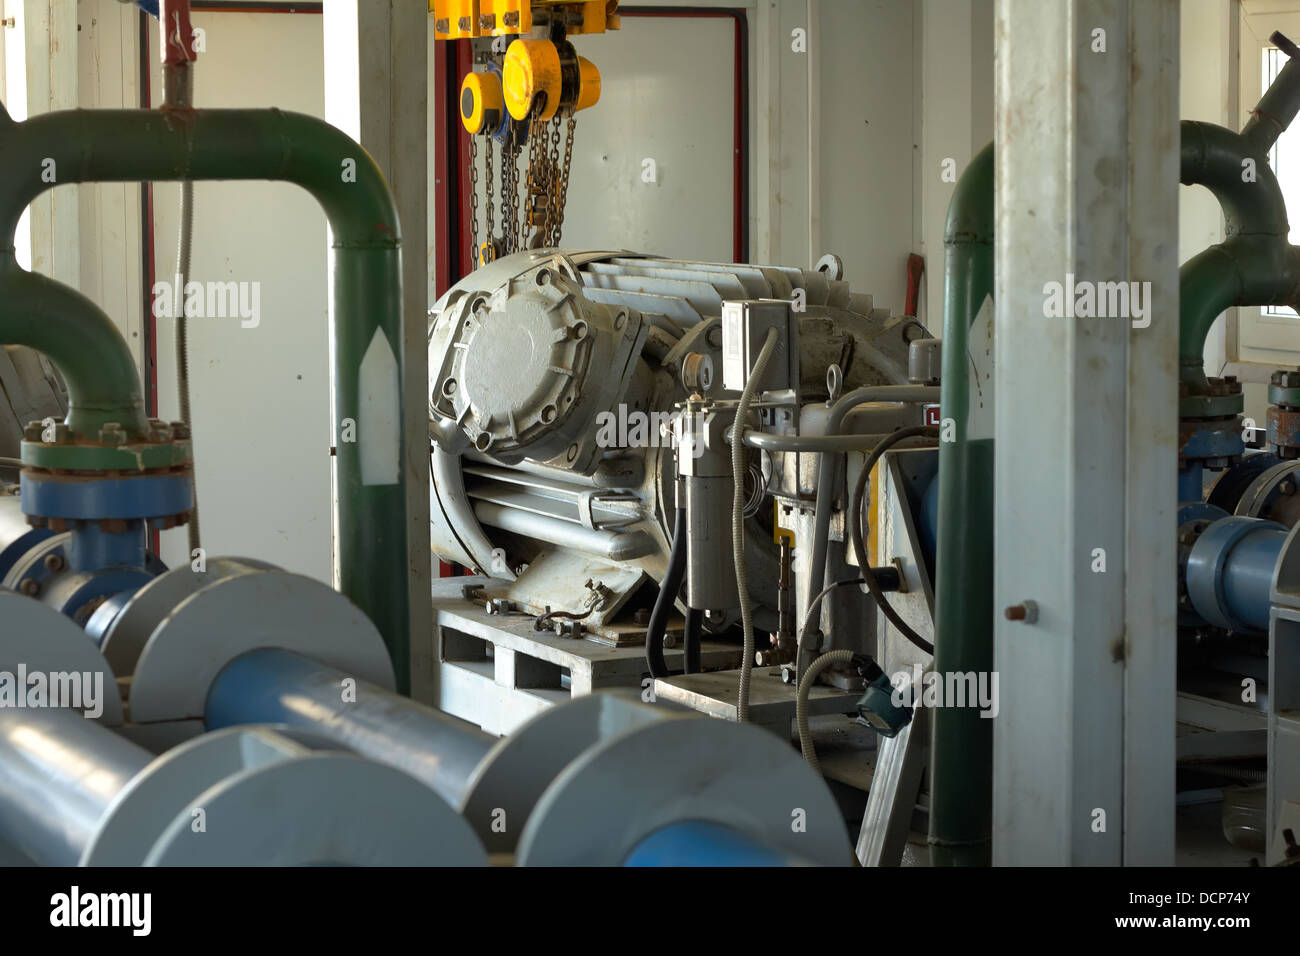 Engine Electronics Stockfotos & Engine Electronics Bilder - Alamy